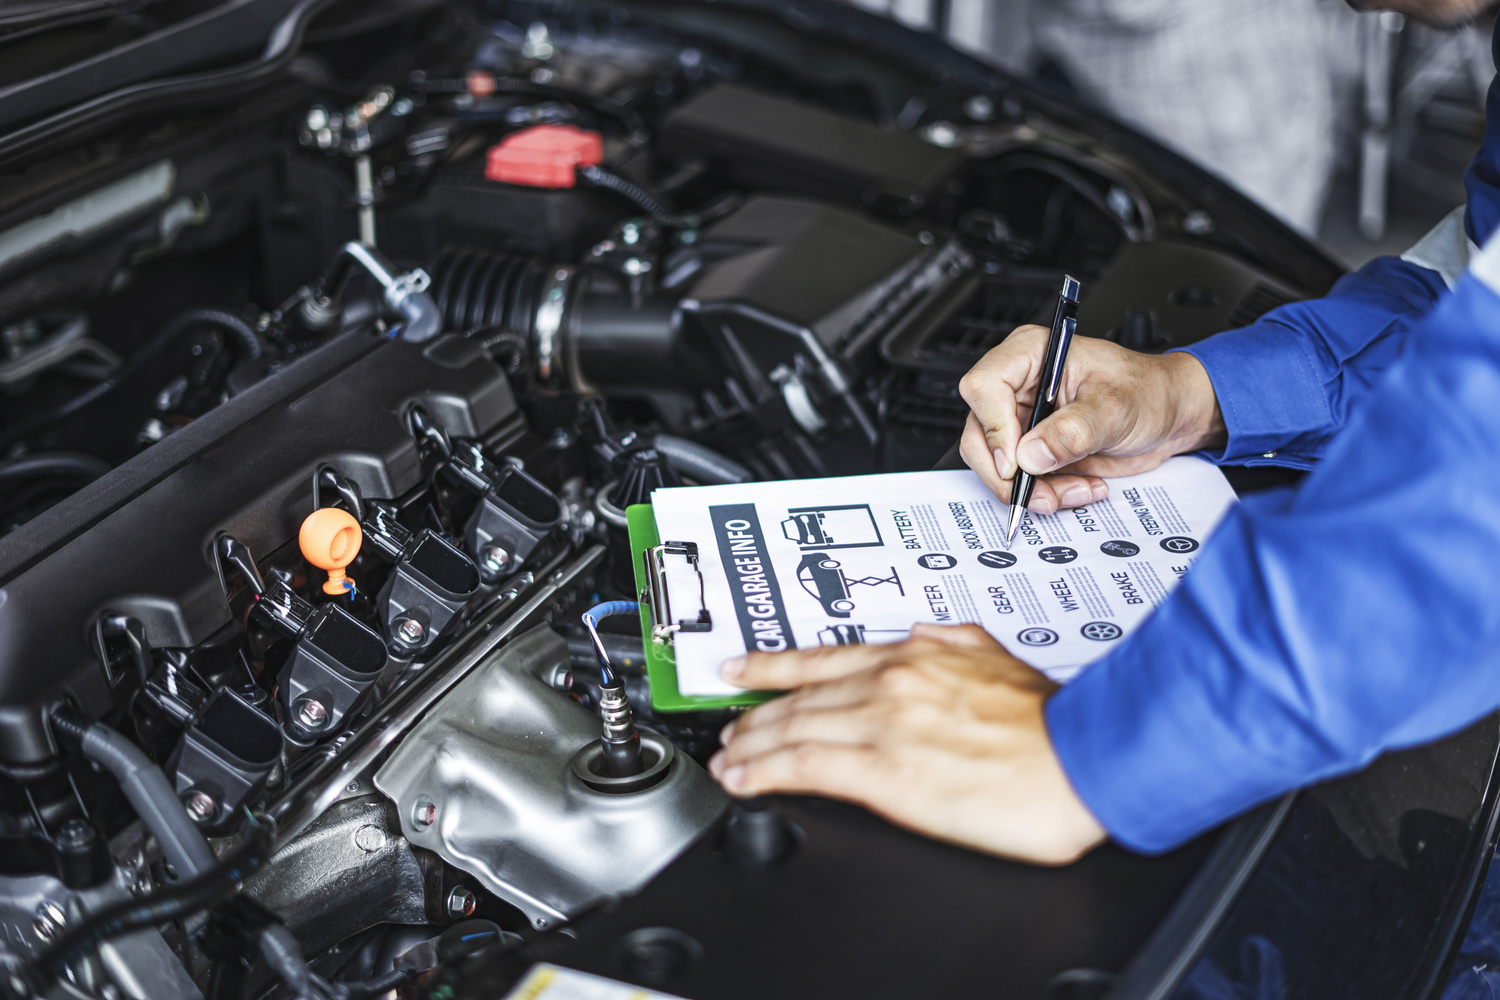 How Can I Save Money On My Car?